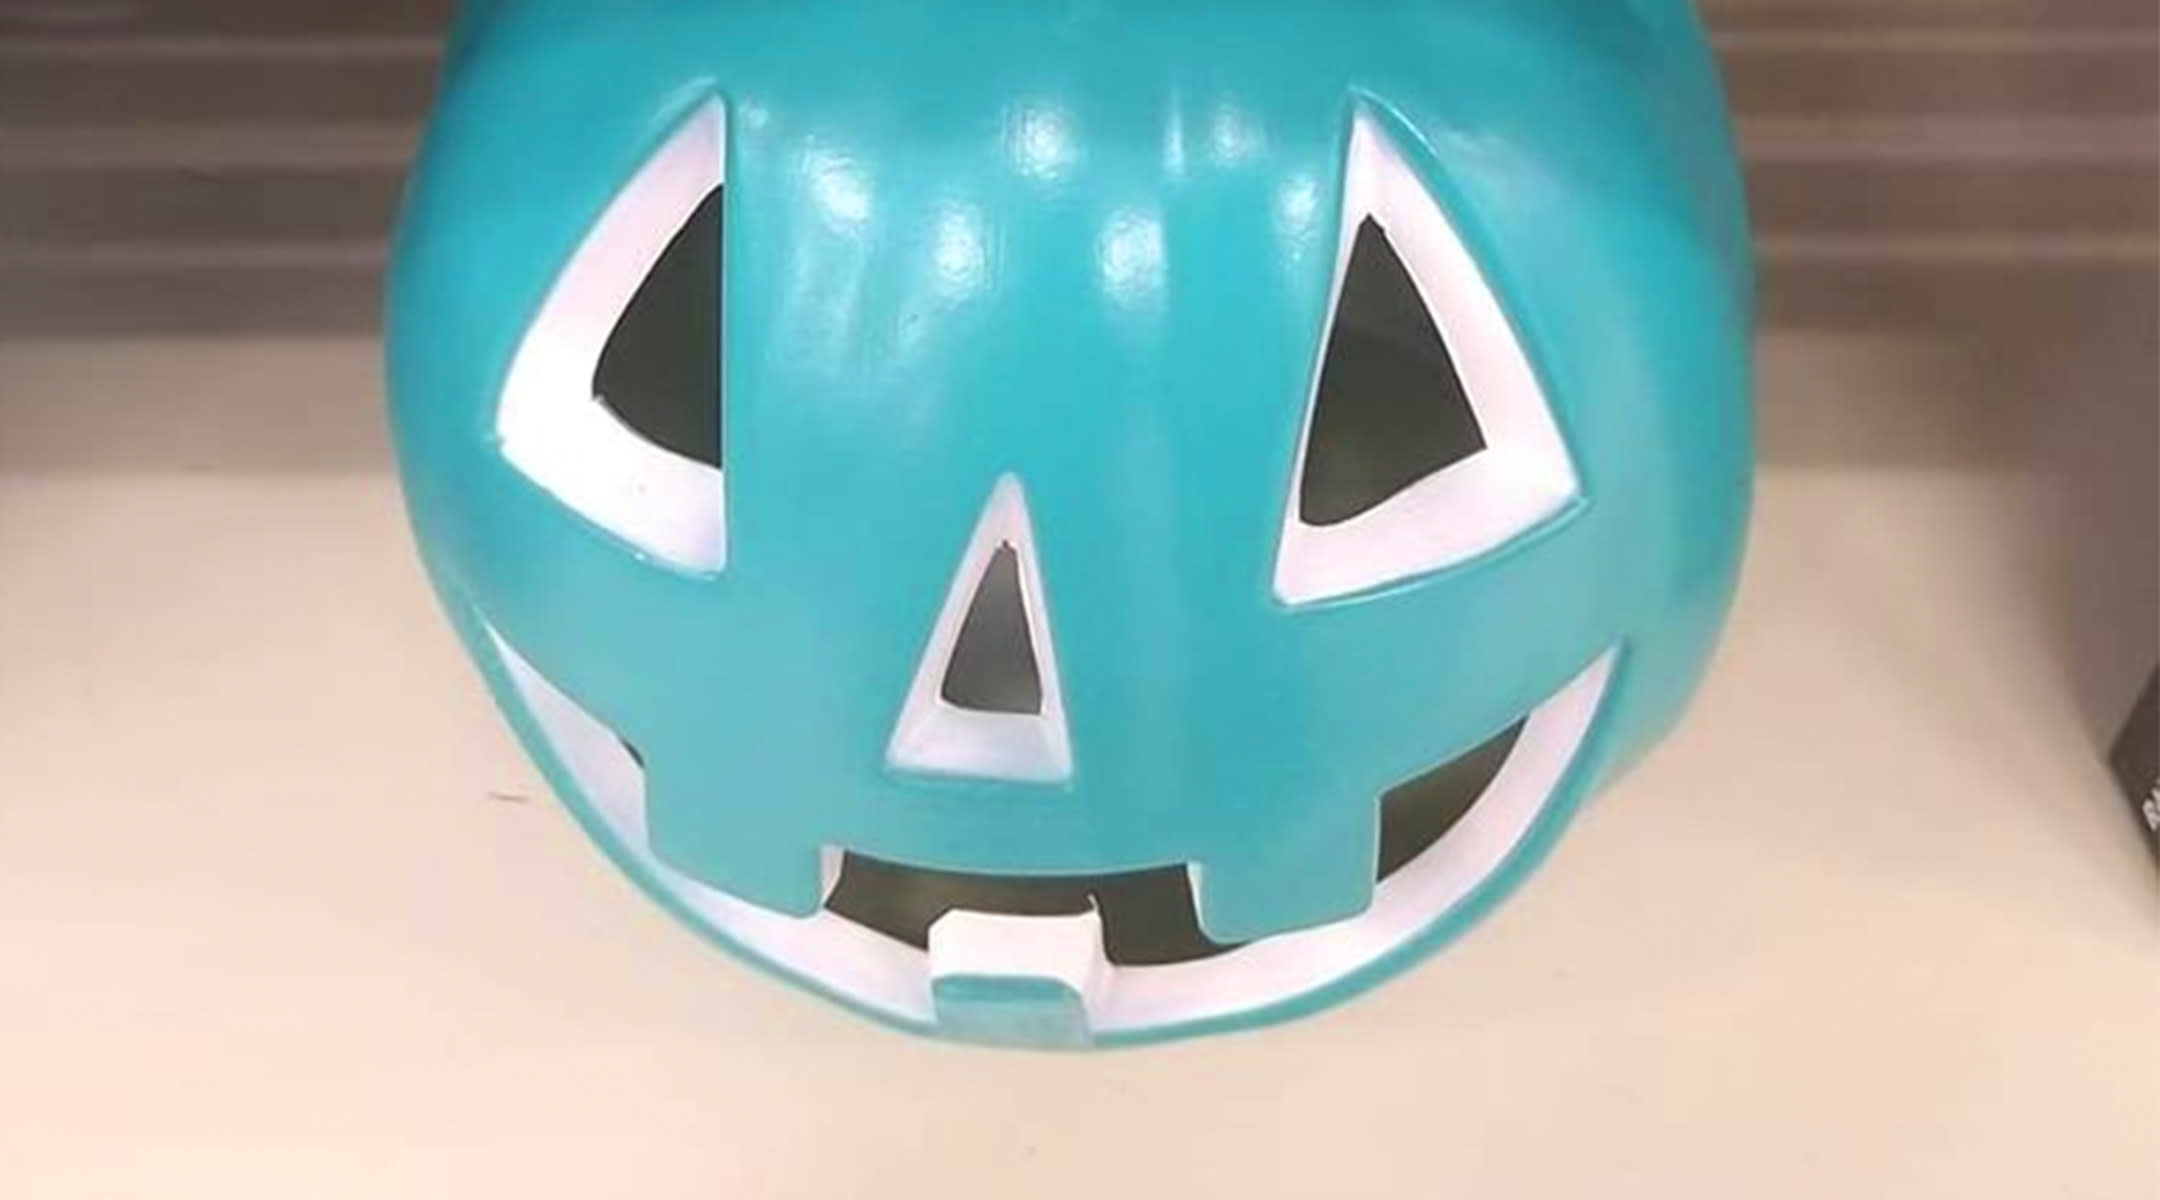 teal pumpkin at target lets people know their house has allergy safe candy options